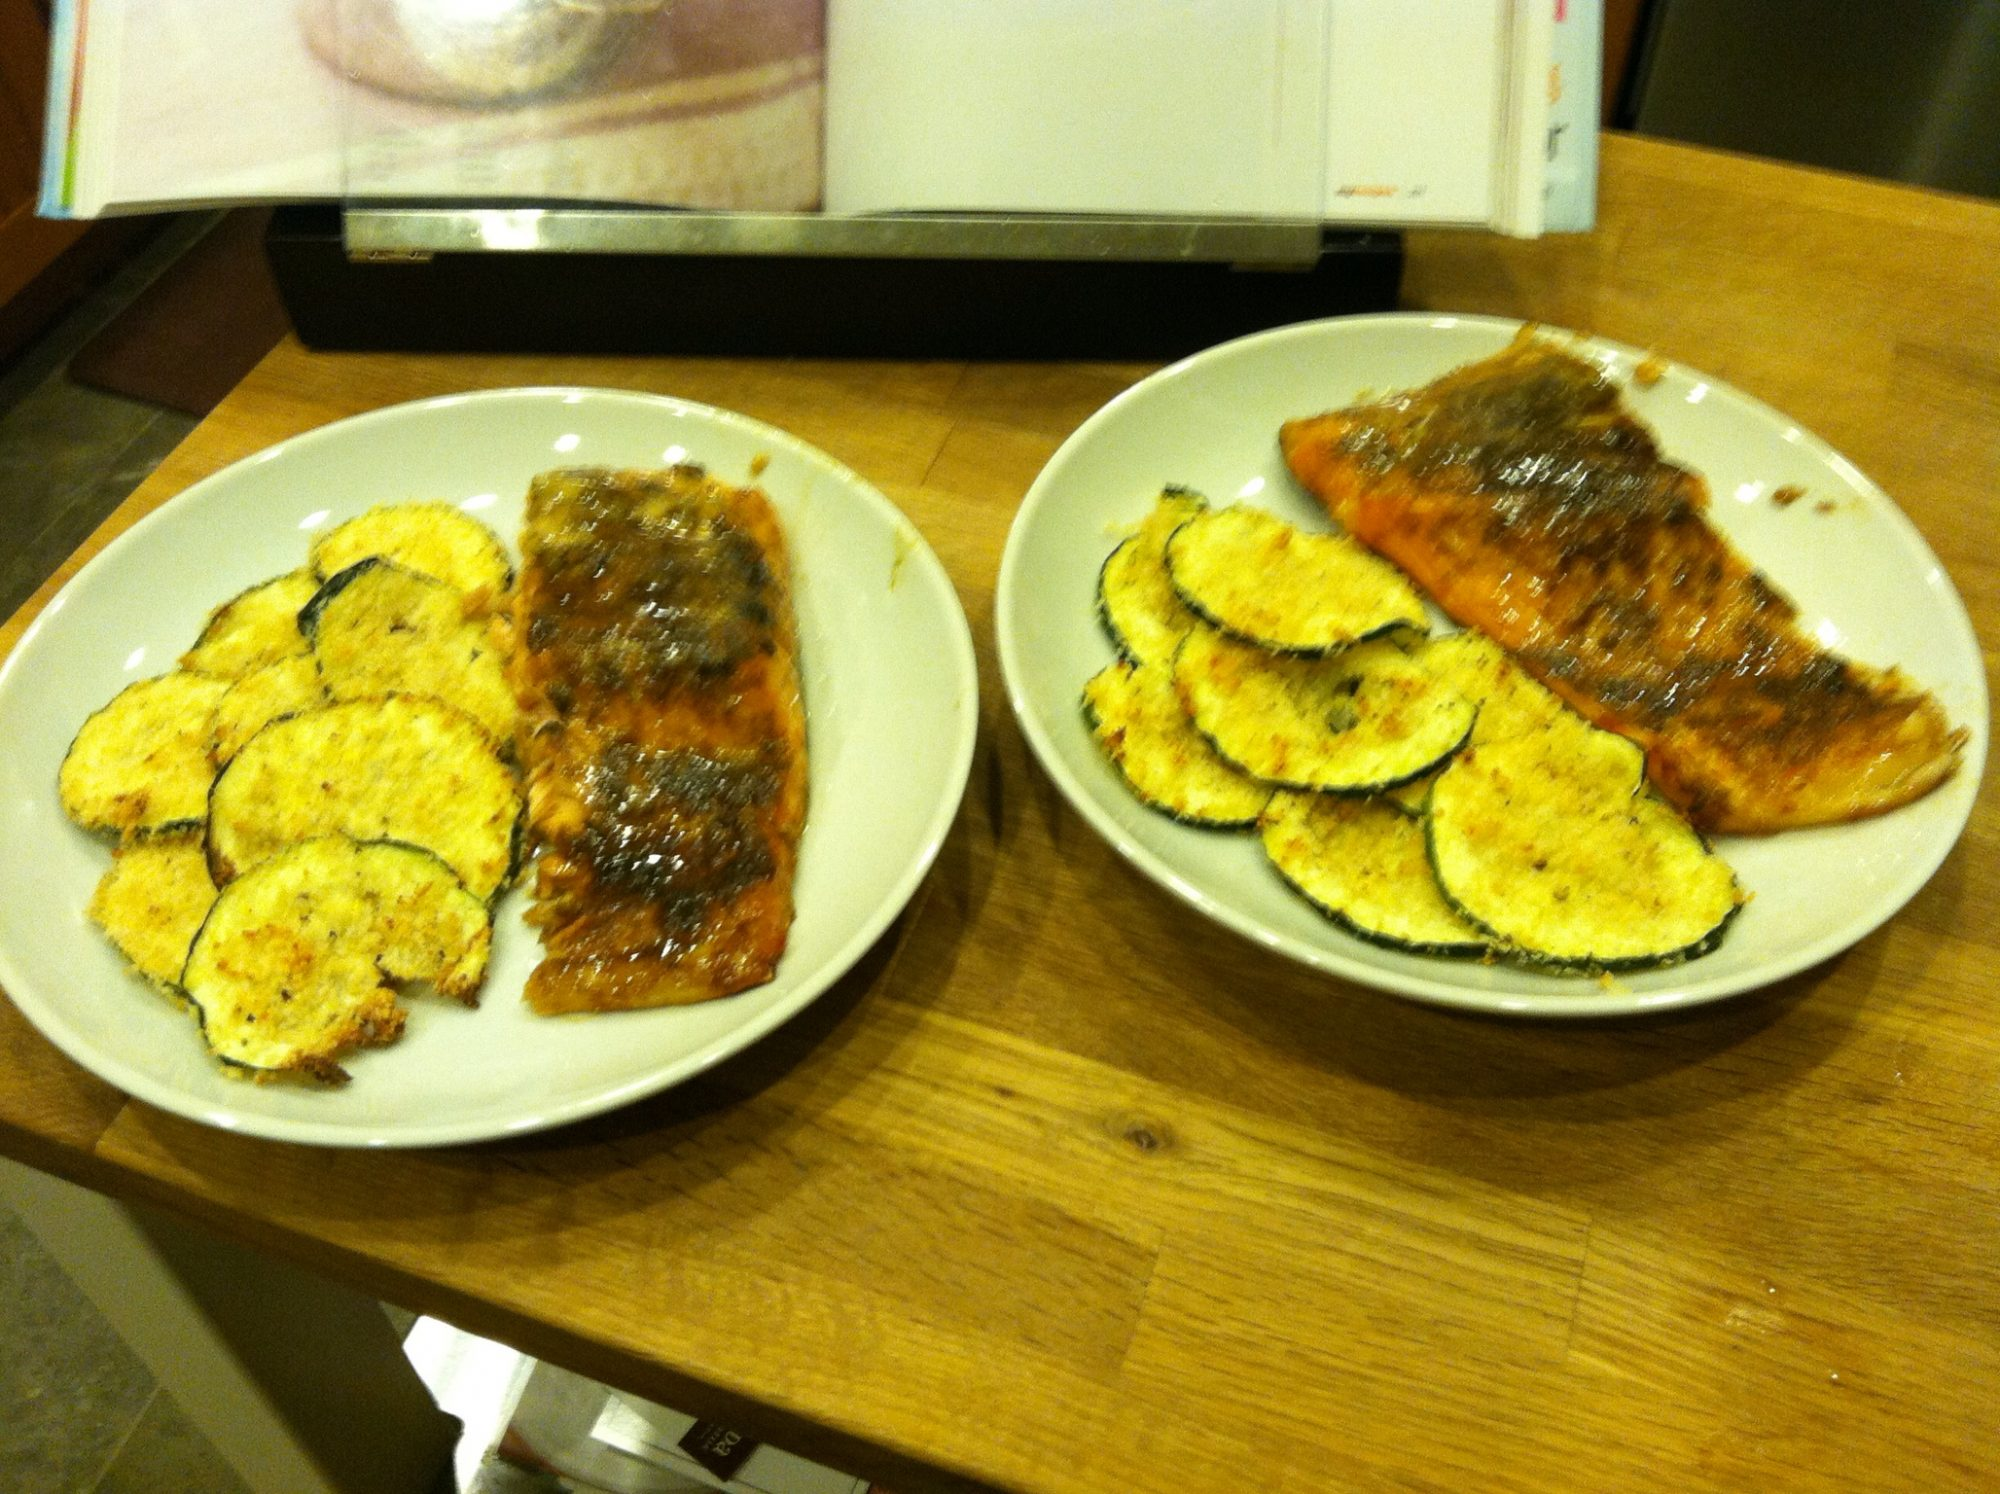 plated-meal.jpg